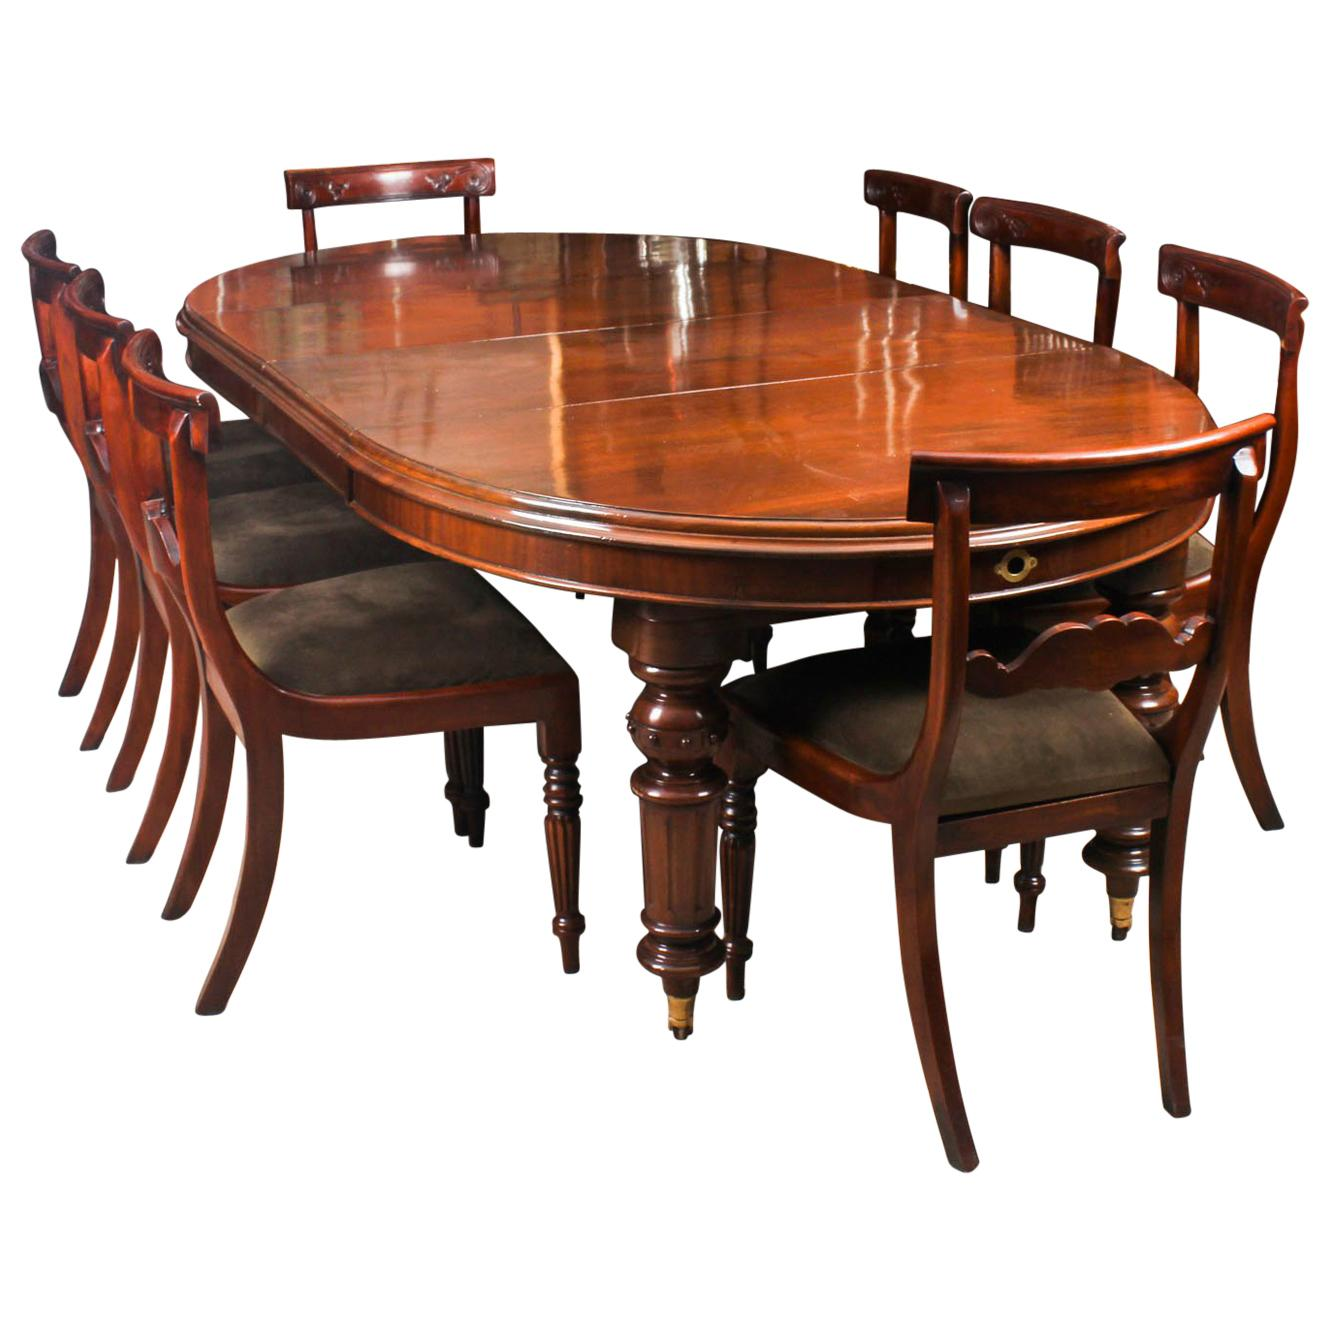 Exceptionnel Antique Victorian Oval Dining Table 19th Century And 8 Bar Back Dining  Chairs